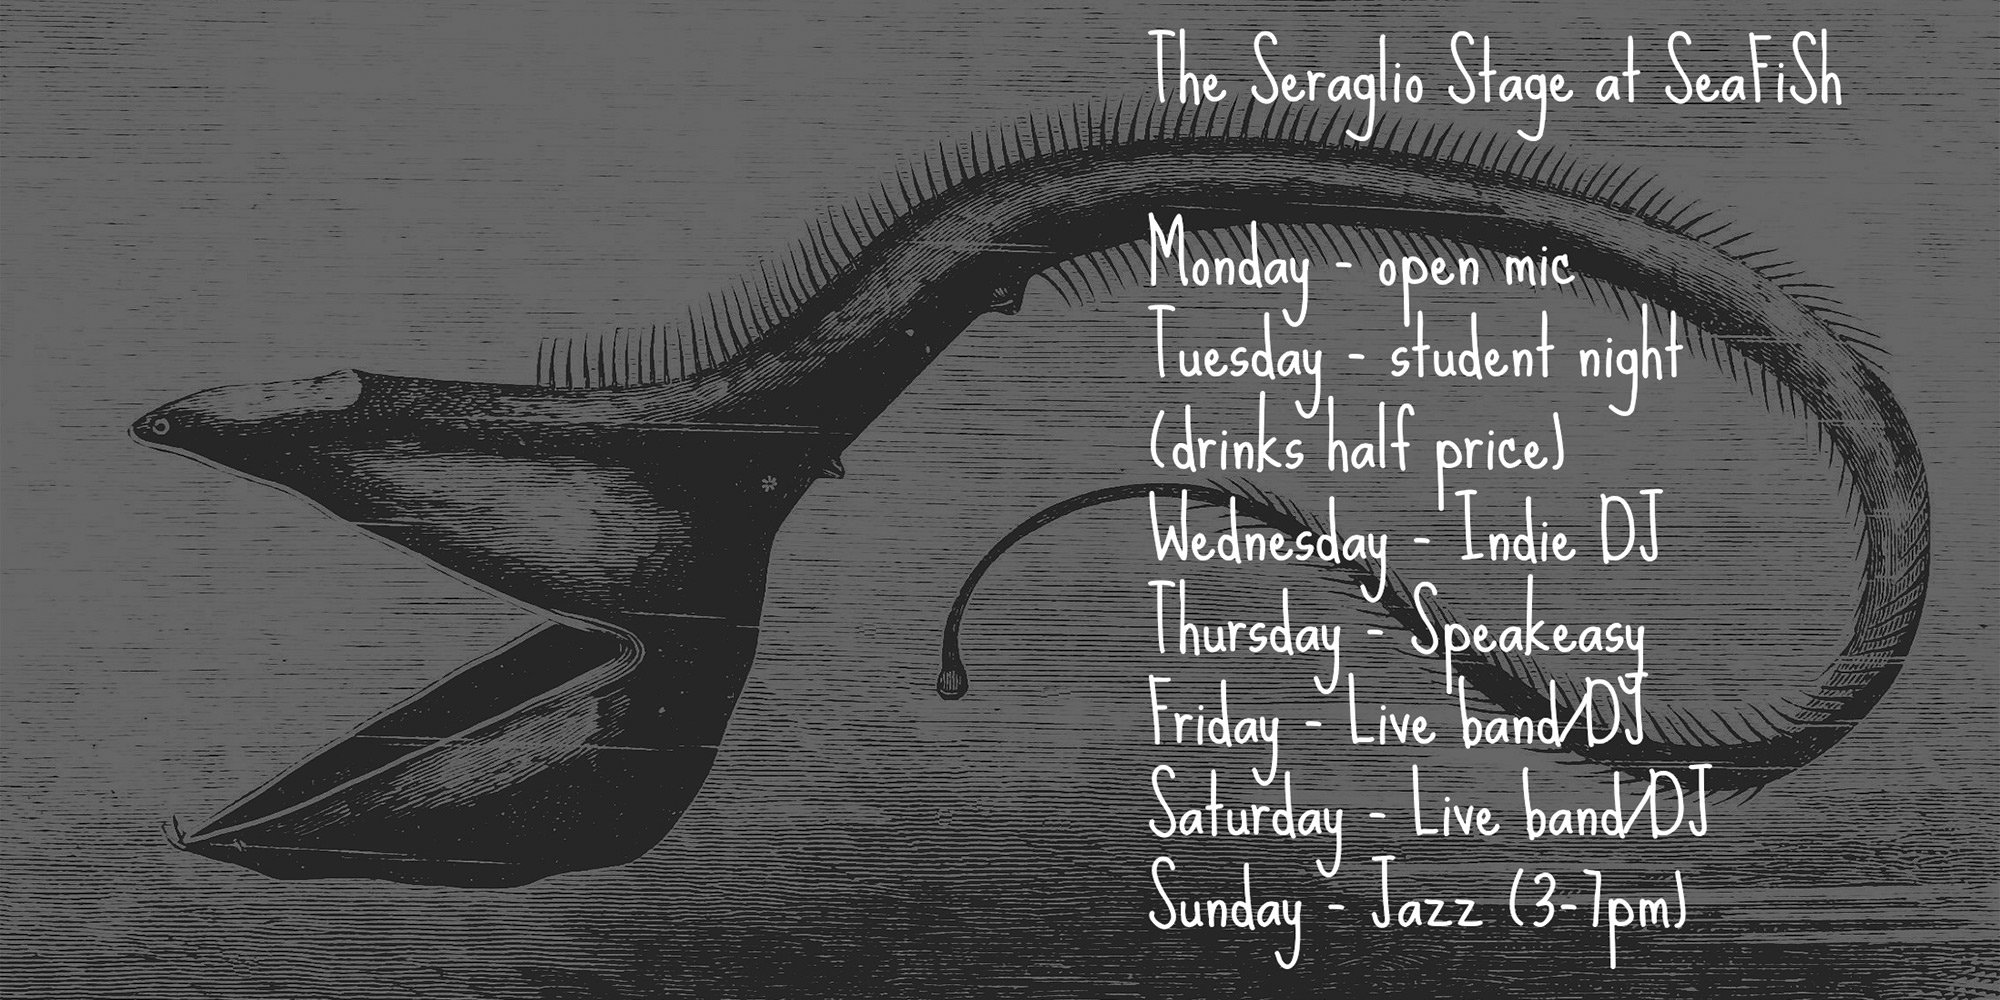 SeaFiSh Cafe Bar Venue weekly schedule